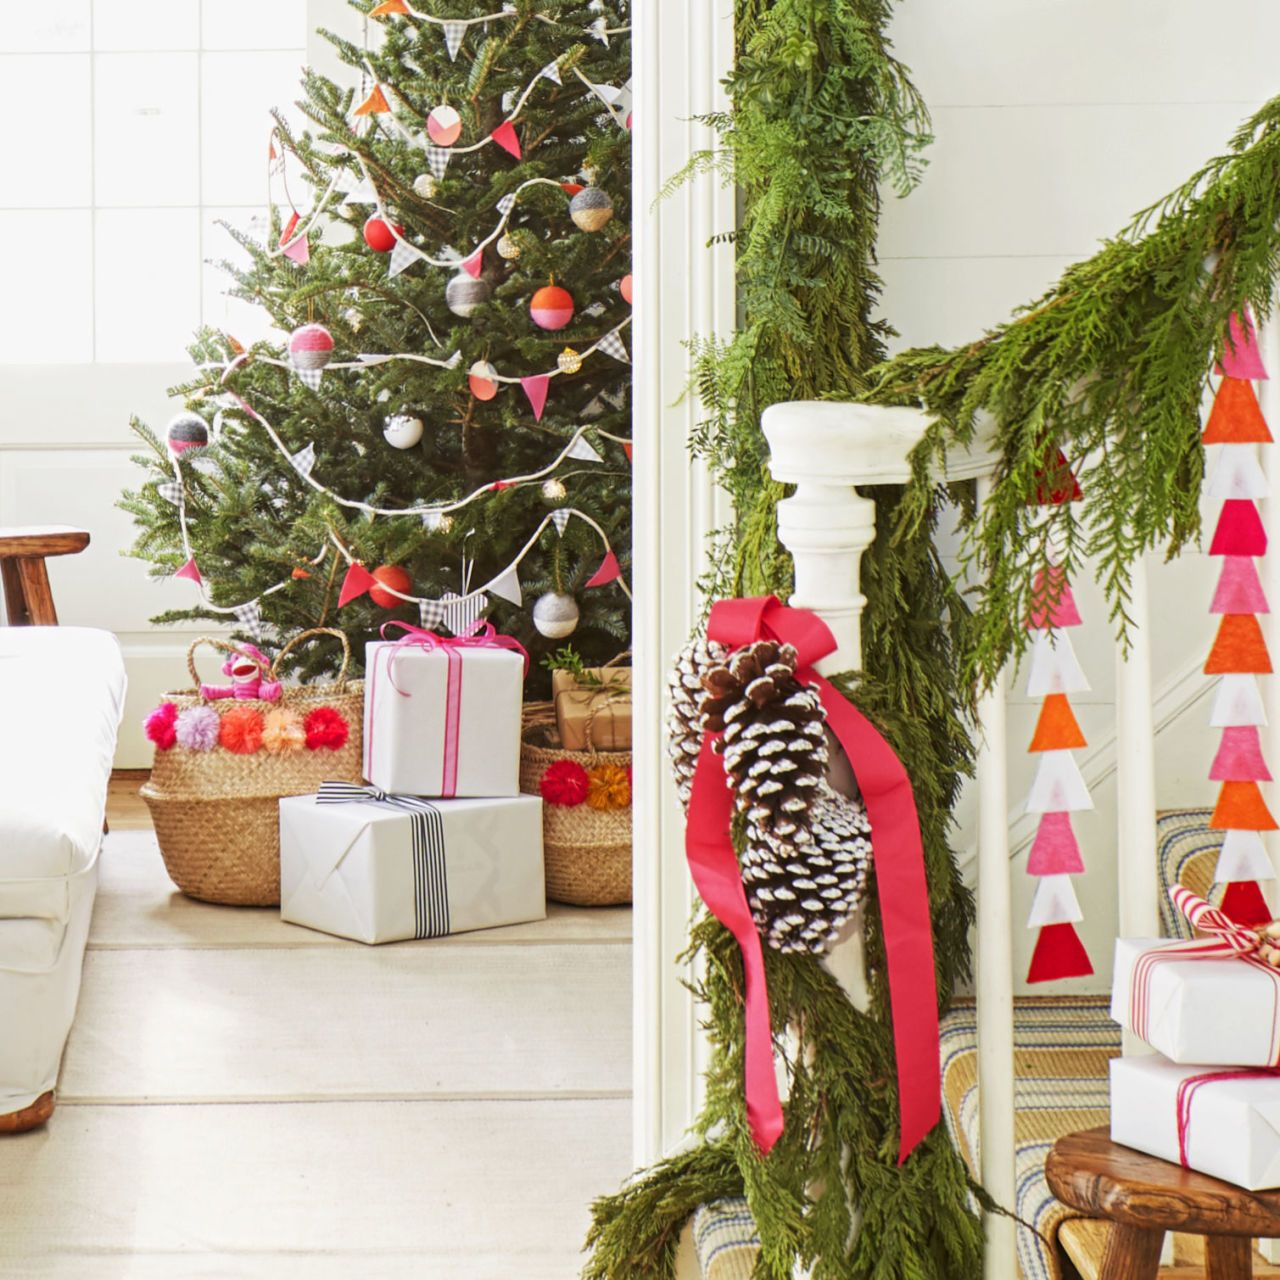 80 Christmas Decorating Ideas For A Joyful Holiday Home. Skip Ad